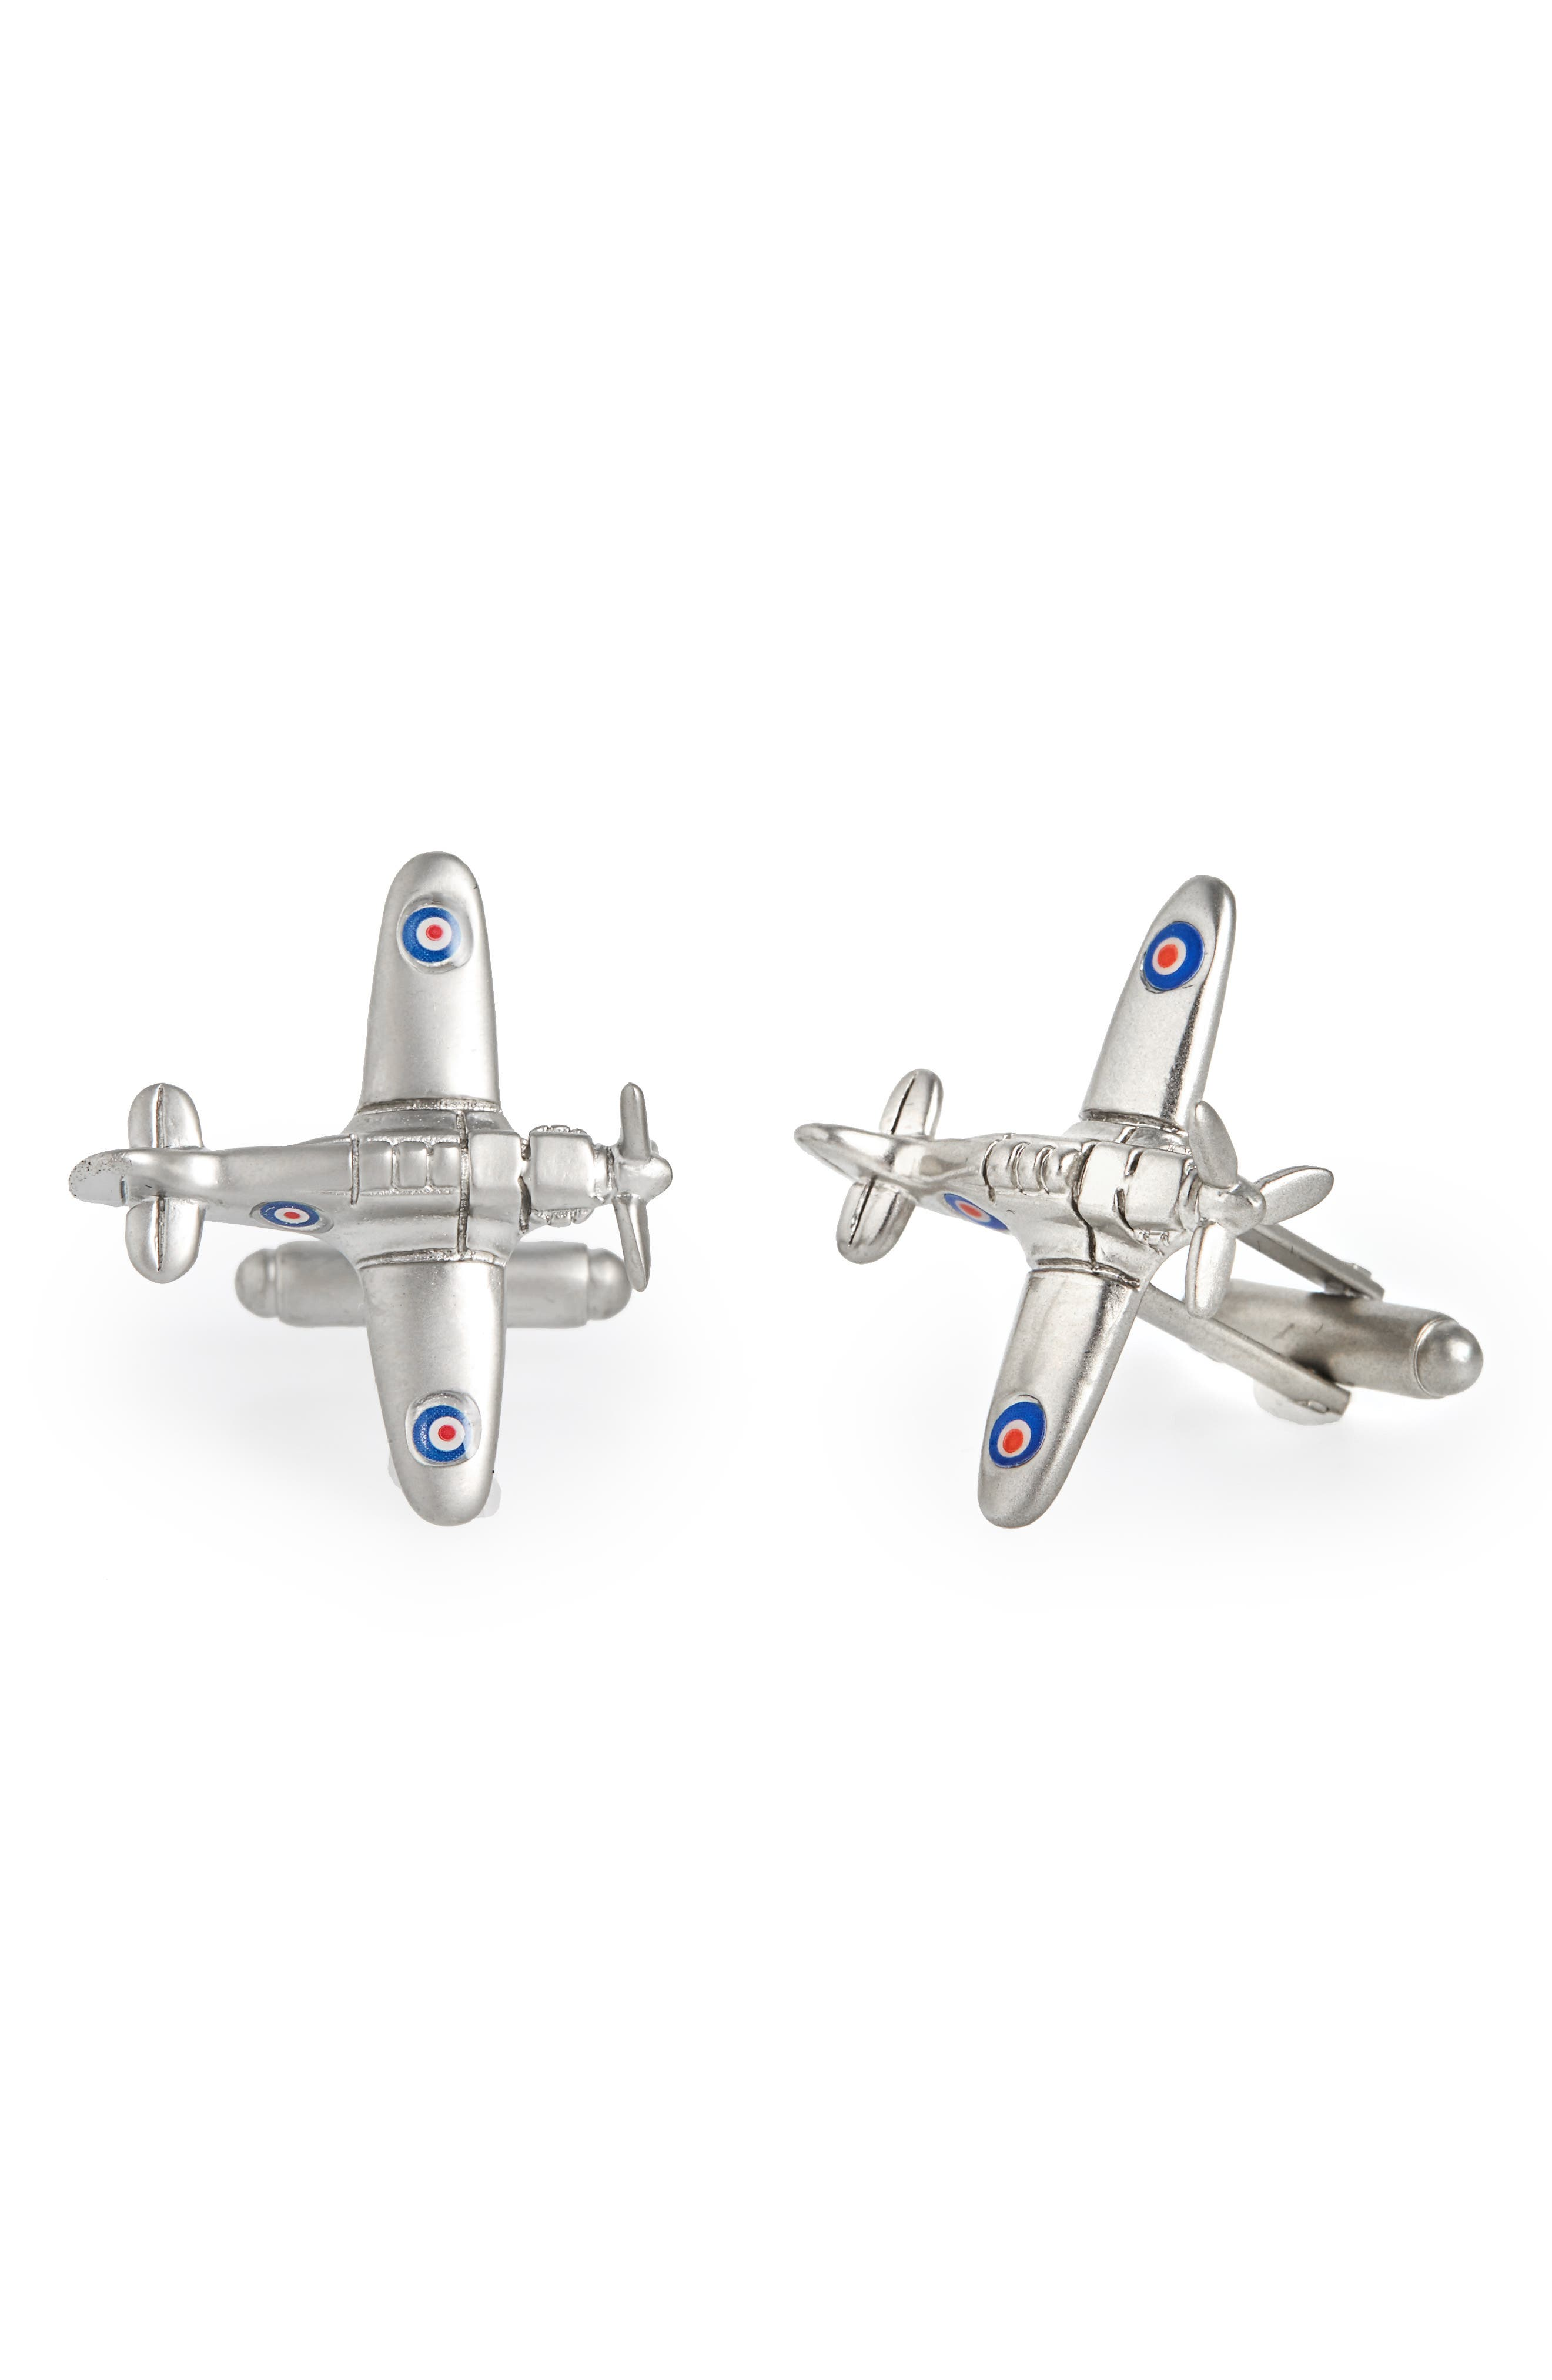 Main Image - Link Up Fighter Plane Cuff Links